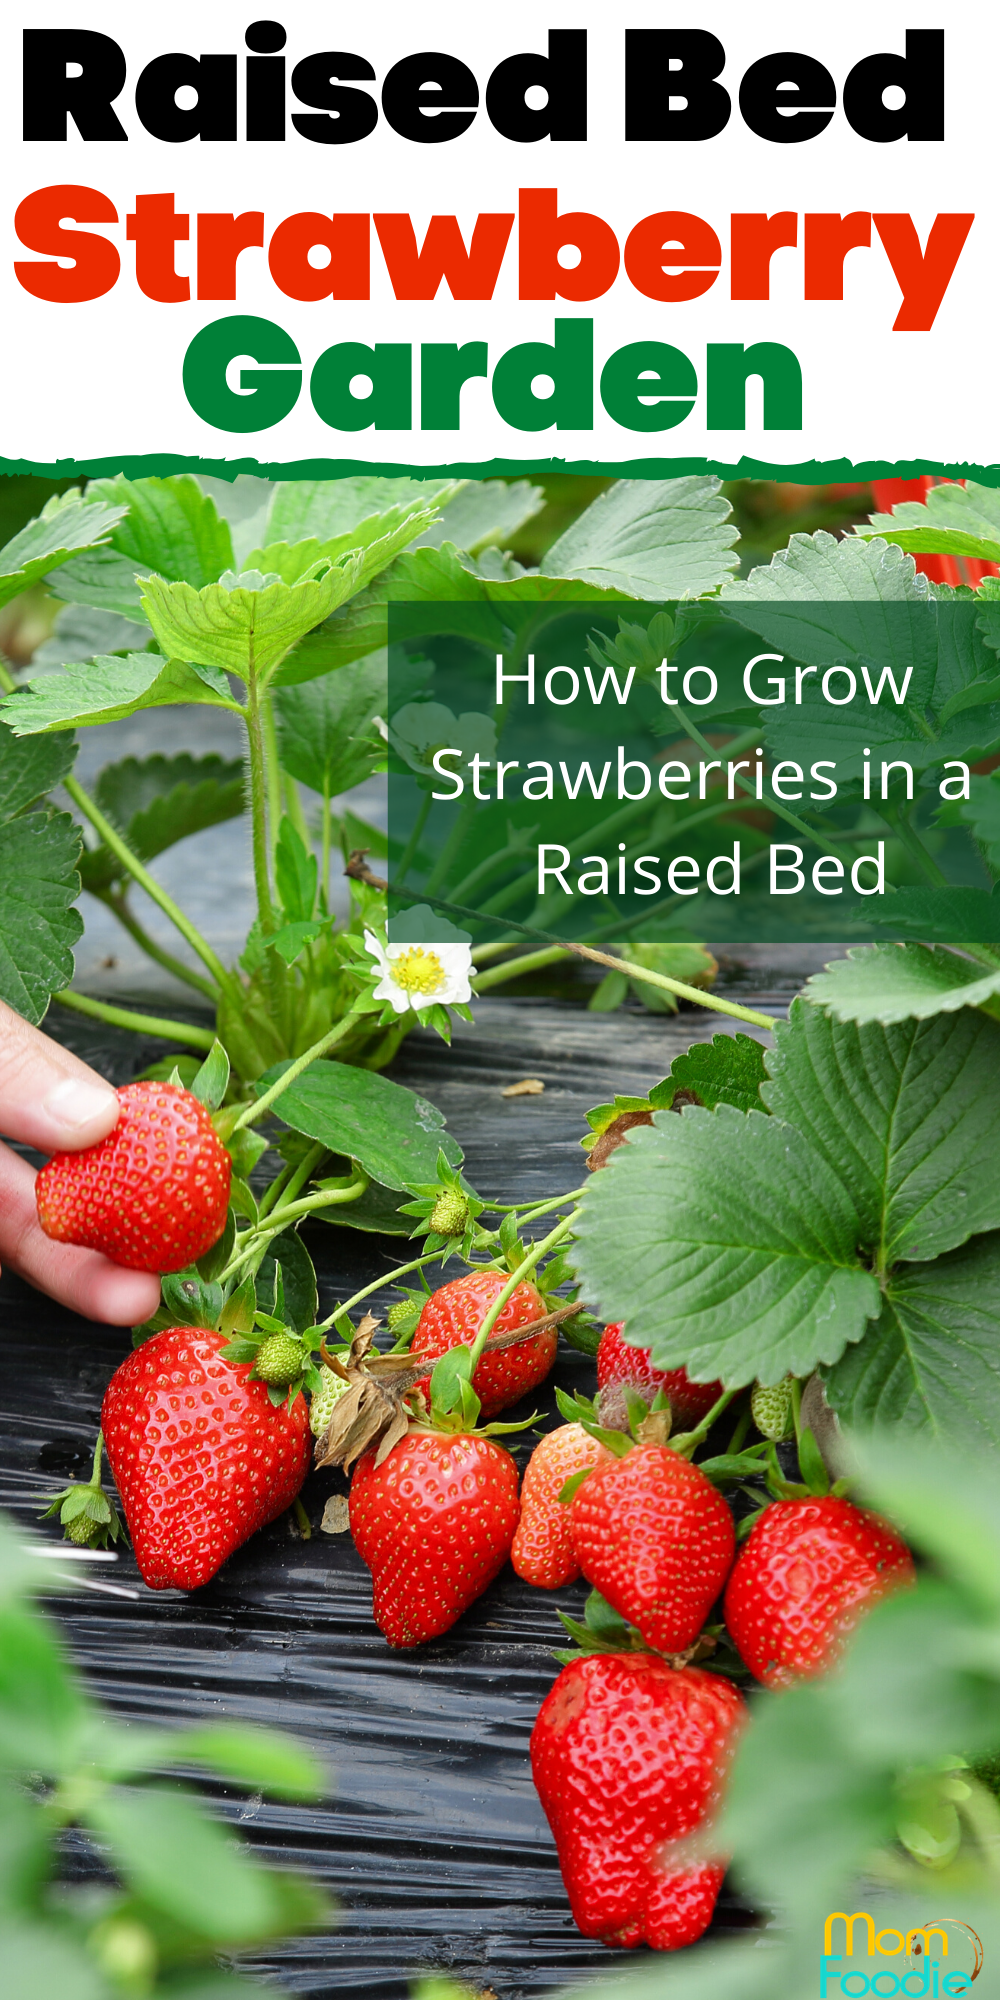 Growing Strawberries In Raised Beds For A Bountiful Harvest Strawberry Garden Growing Strawberries Growing Strawberries In Containers